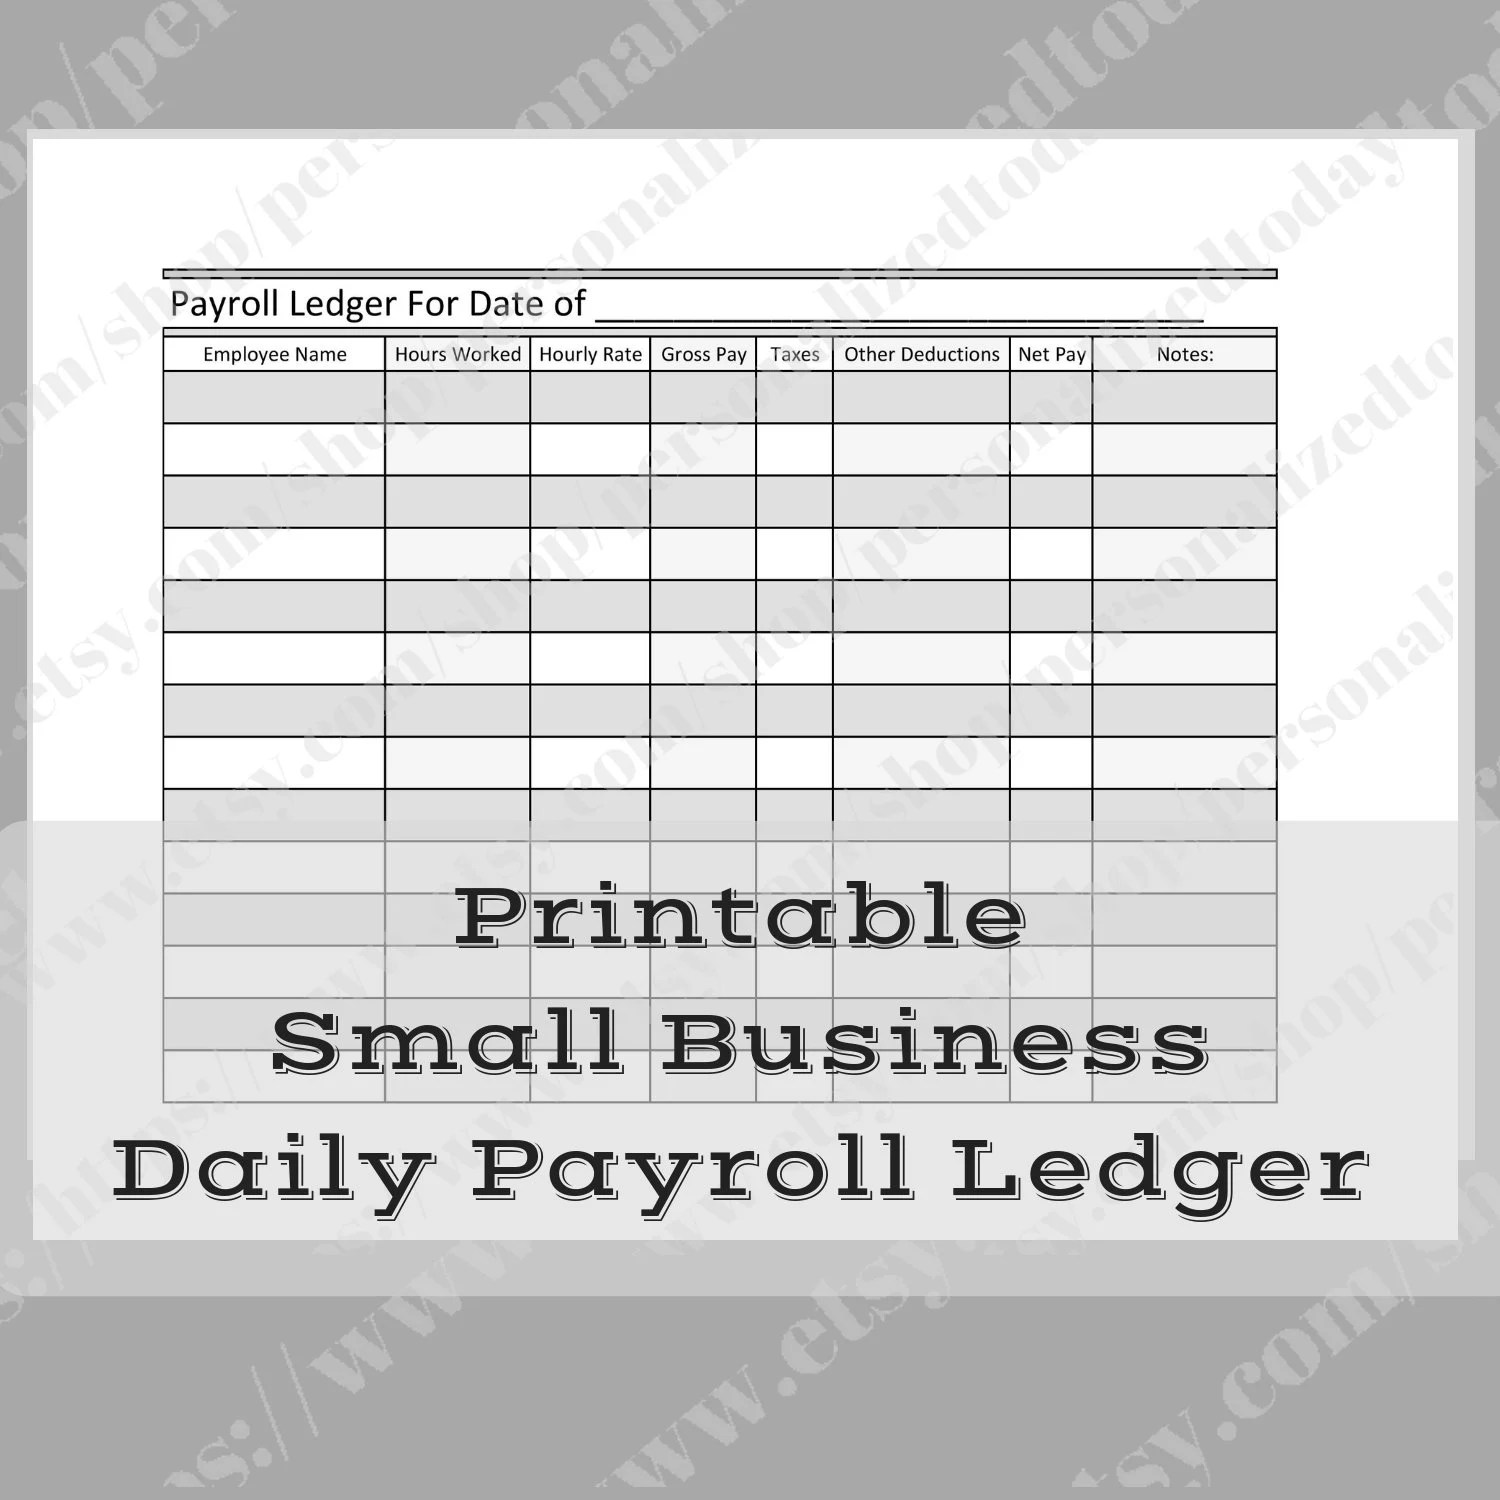 Small Business Daily Payroll Tracker Ledger Keep Record of Etsy